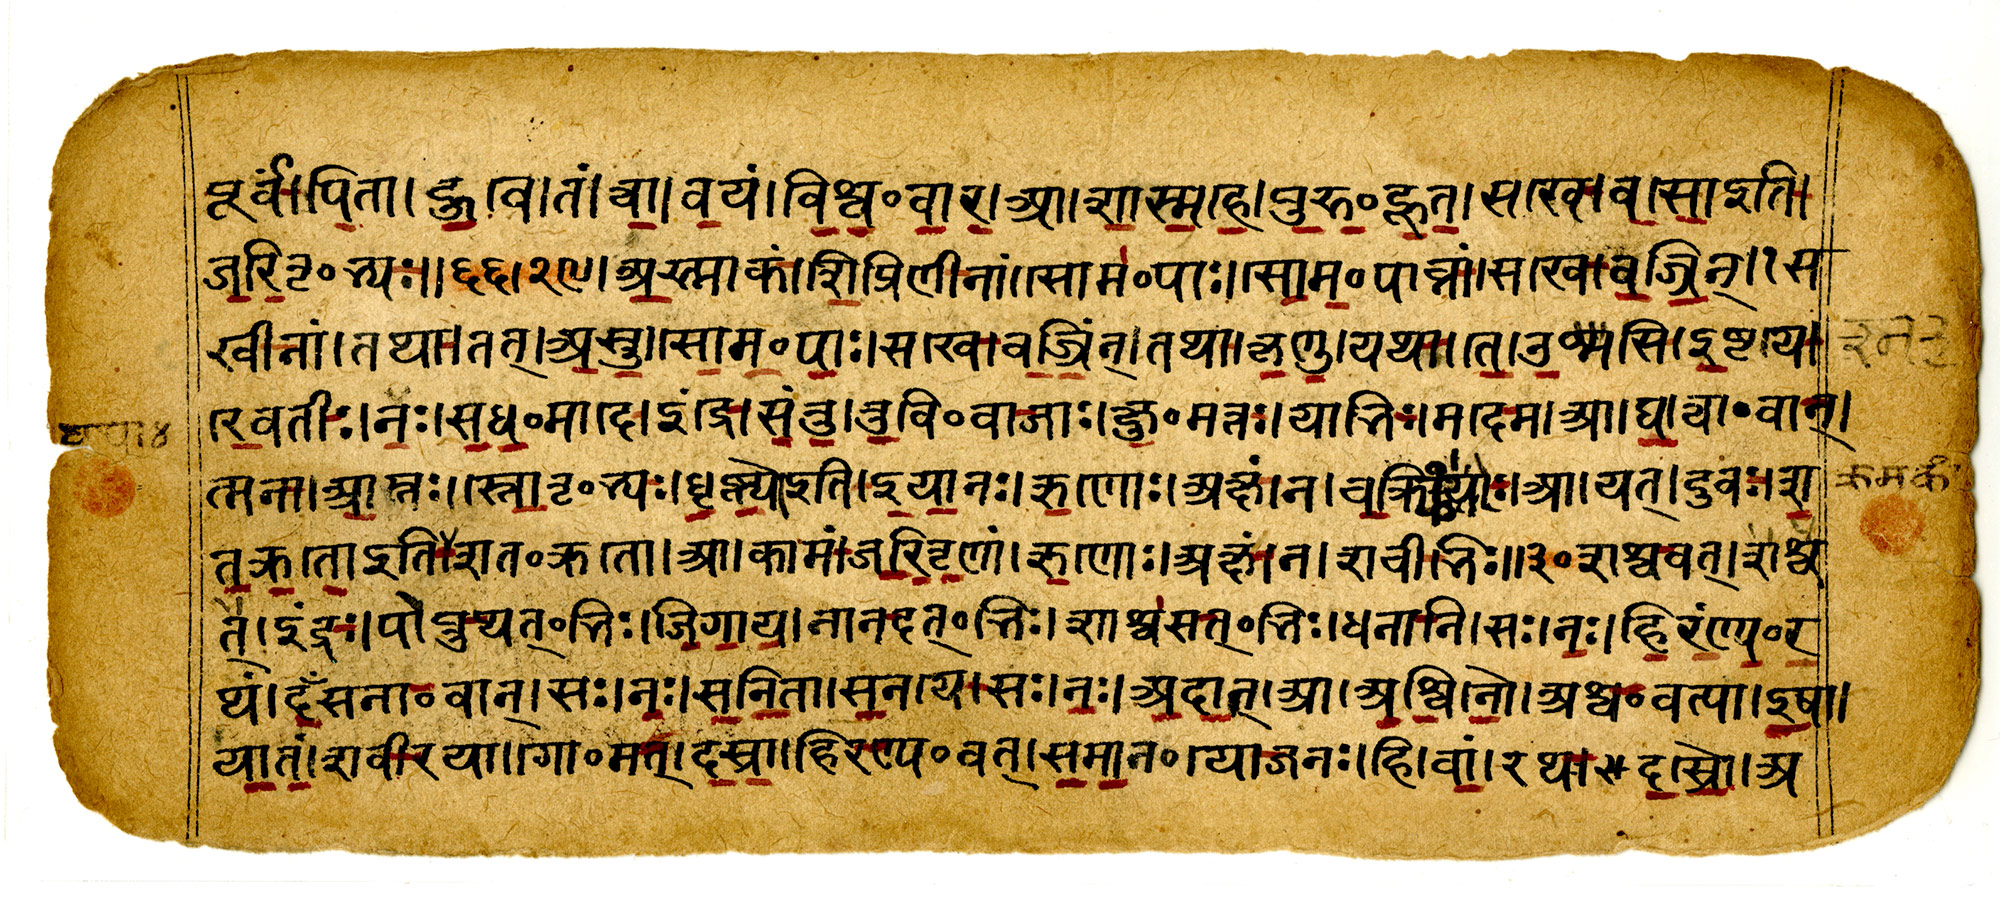 5,000 Year old Book: The Rig Veda is Composed